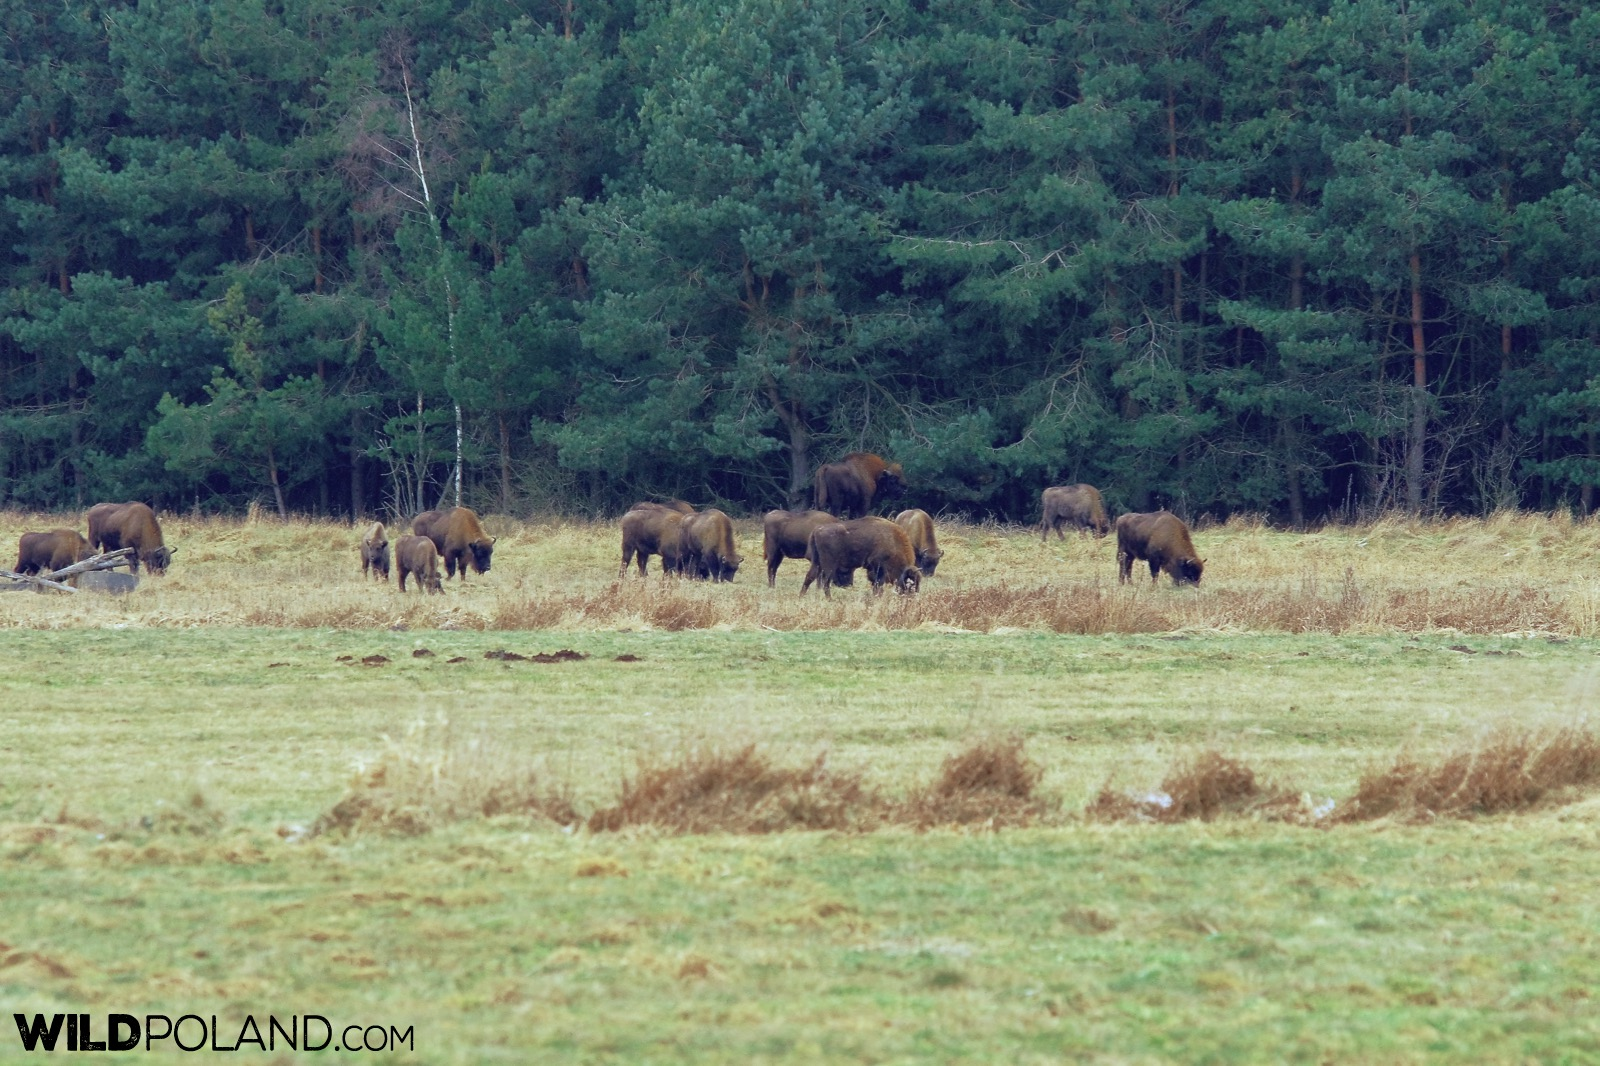 Herd of Bison feeding at the outskirts of Białowieża Forest, photo by Andrzej Petryna